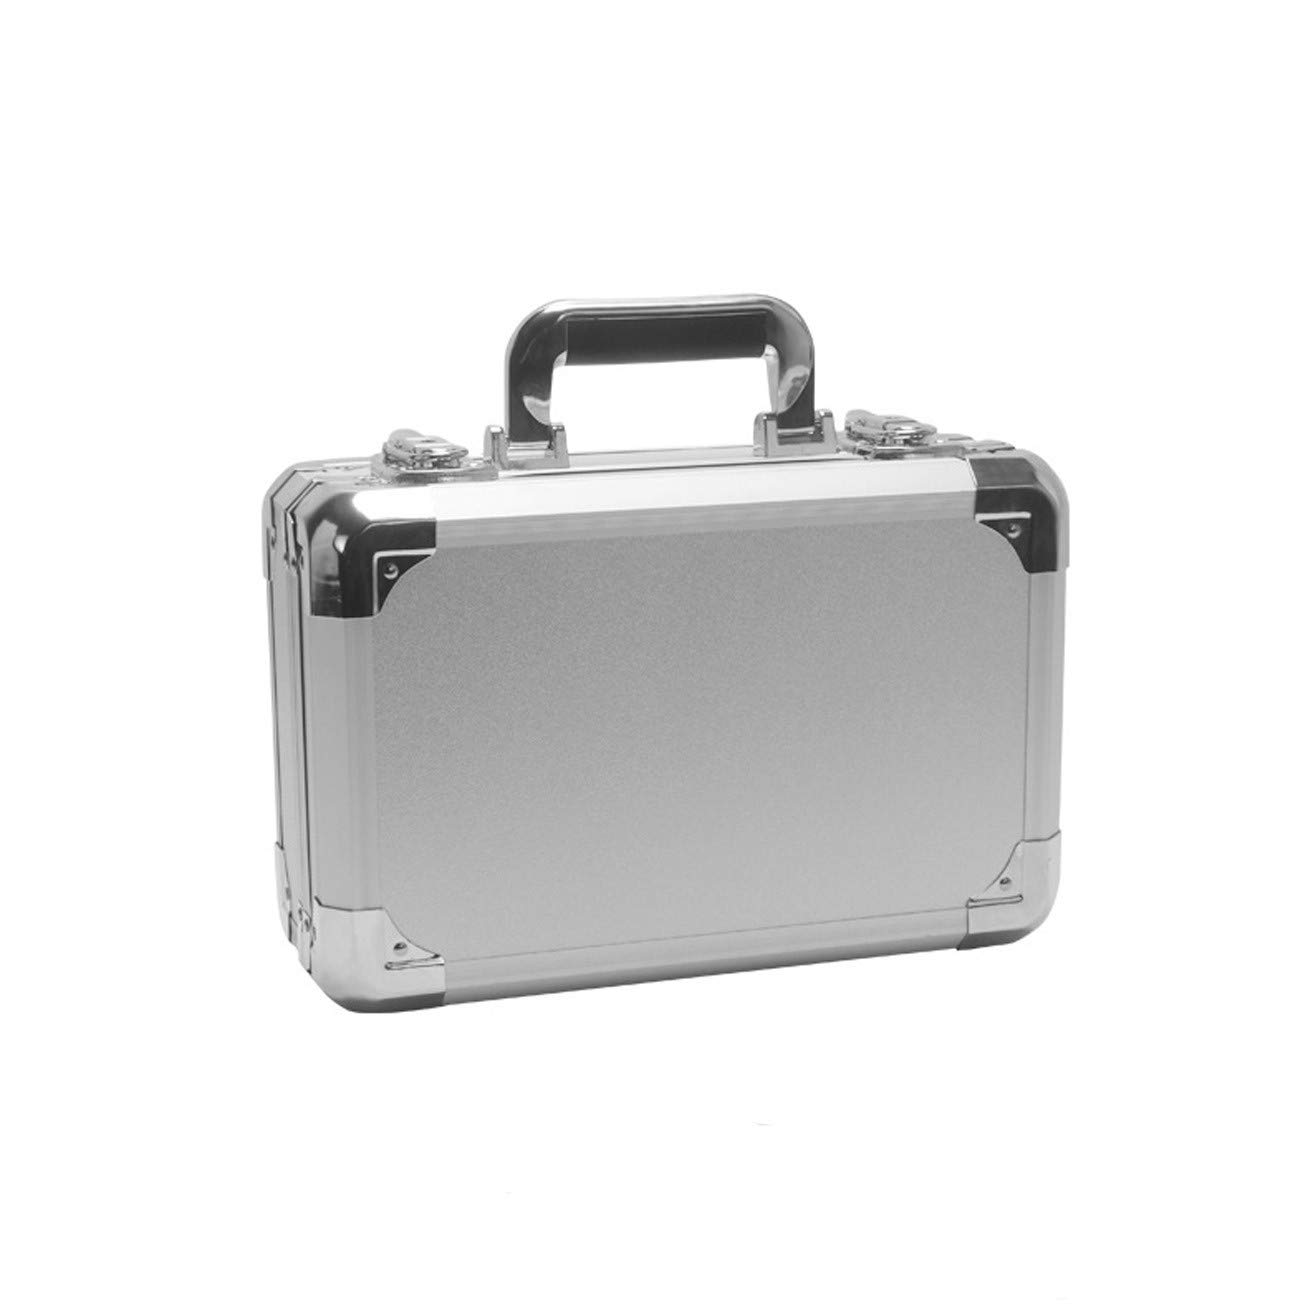 DDLmax Carrying Case Aluminum Hard Travel Protect Case for SJRC F11 by DDLmax (Image #5)